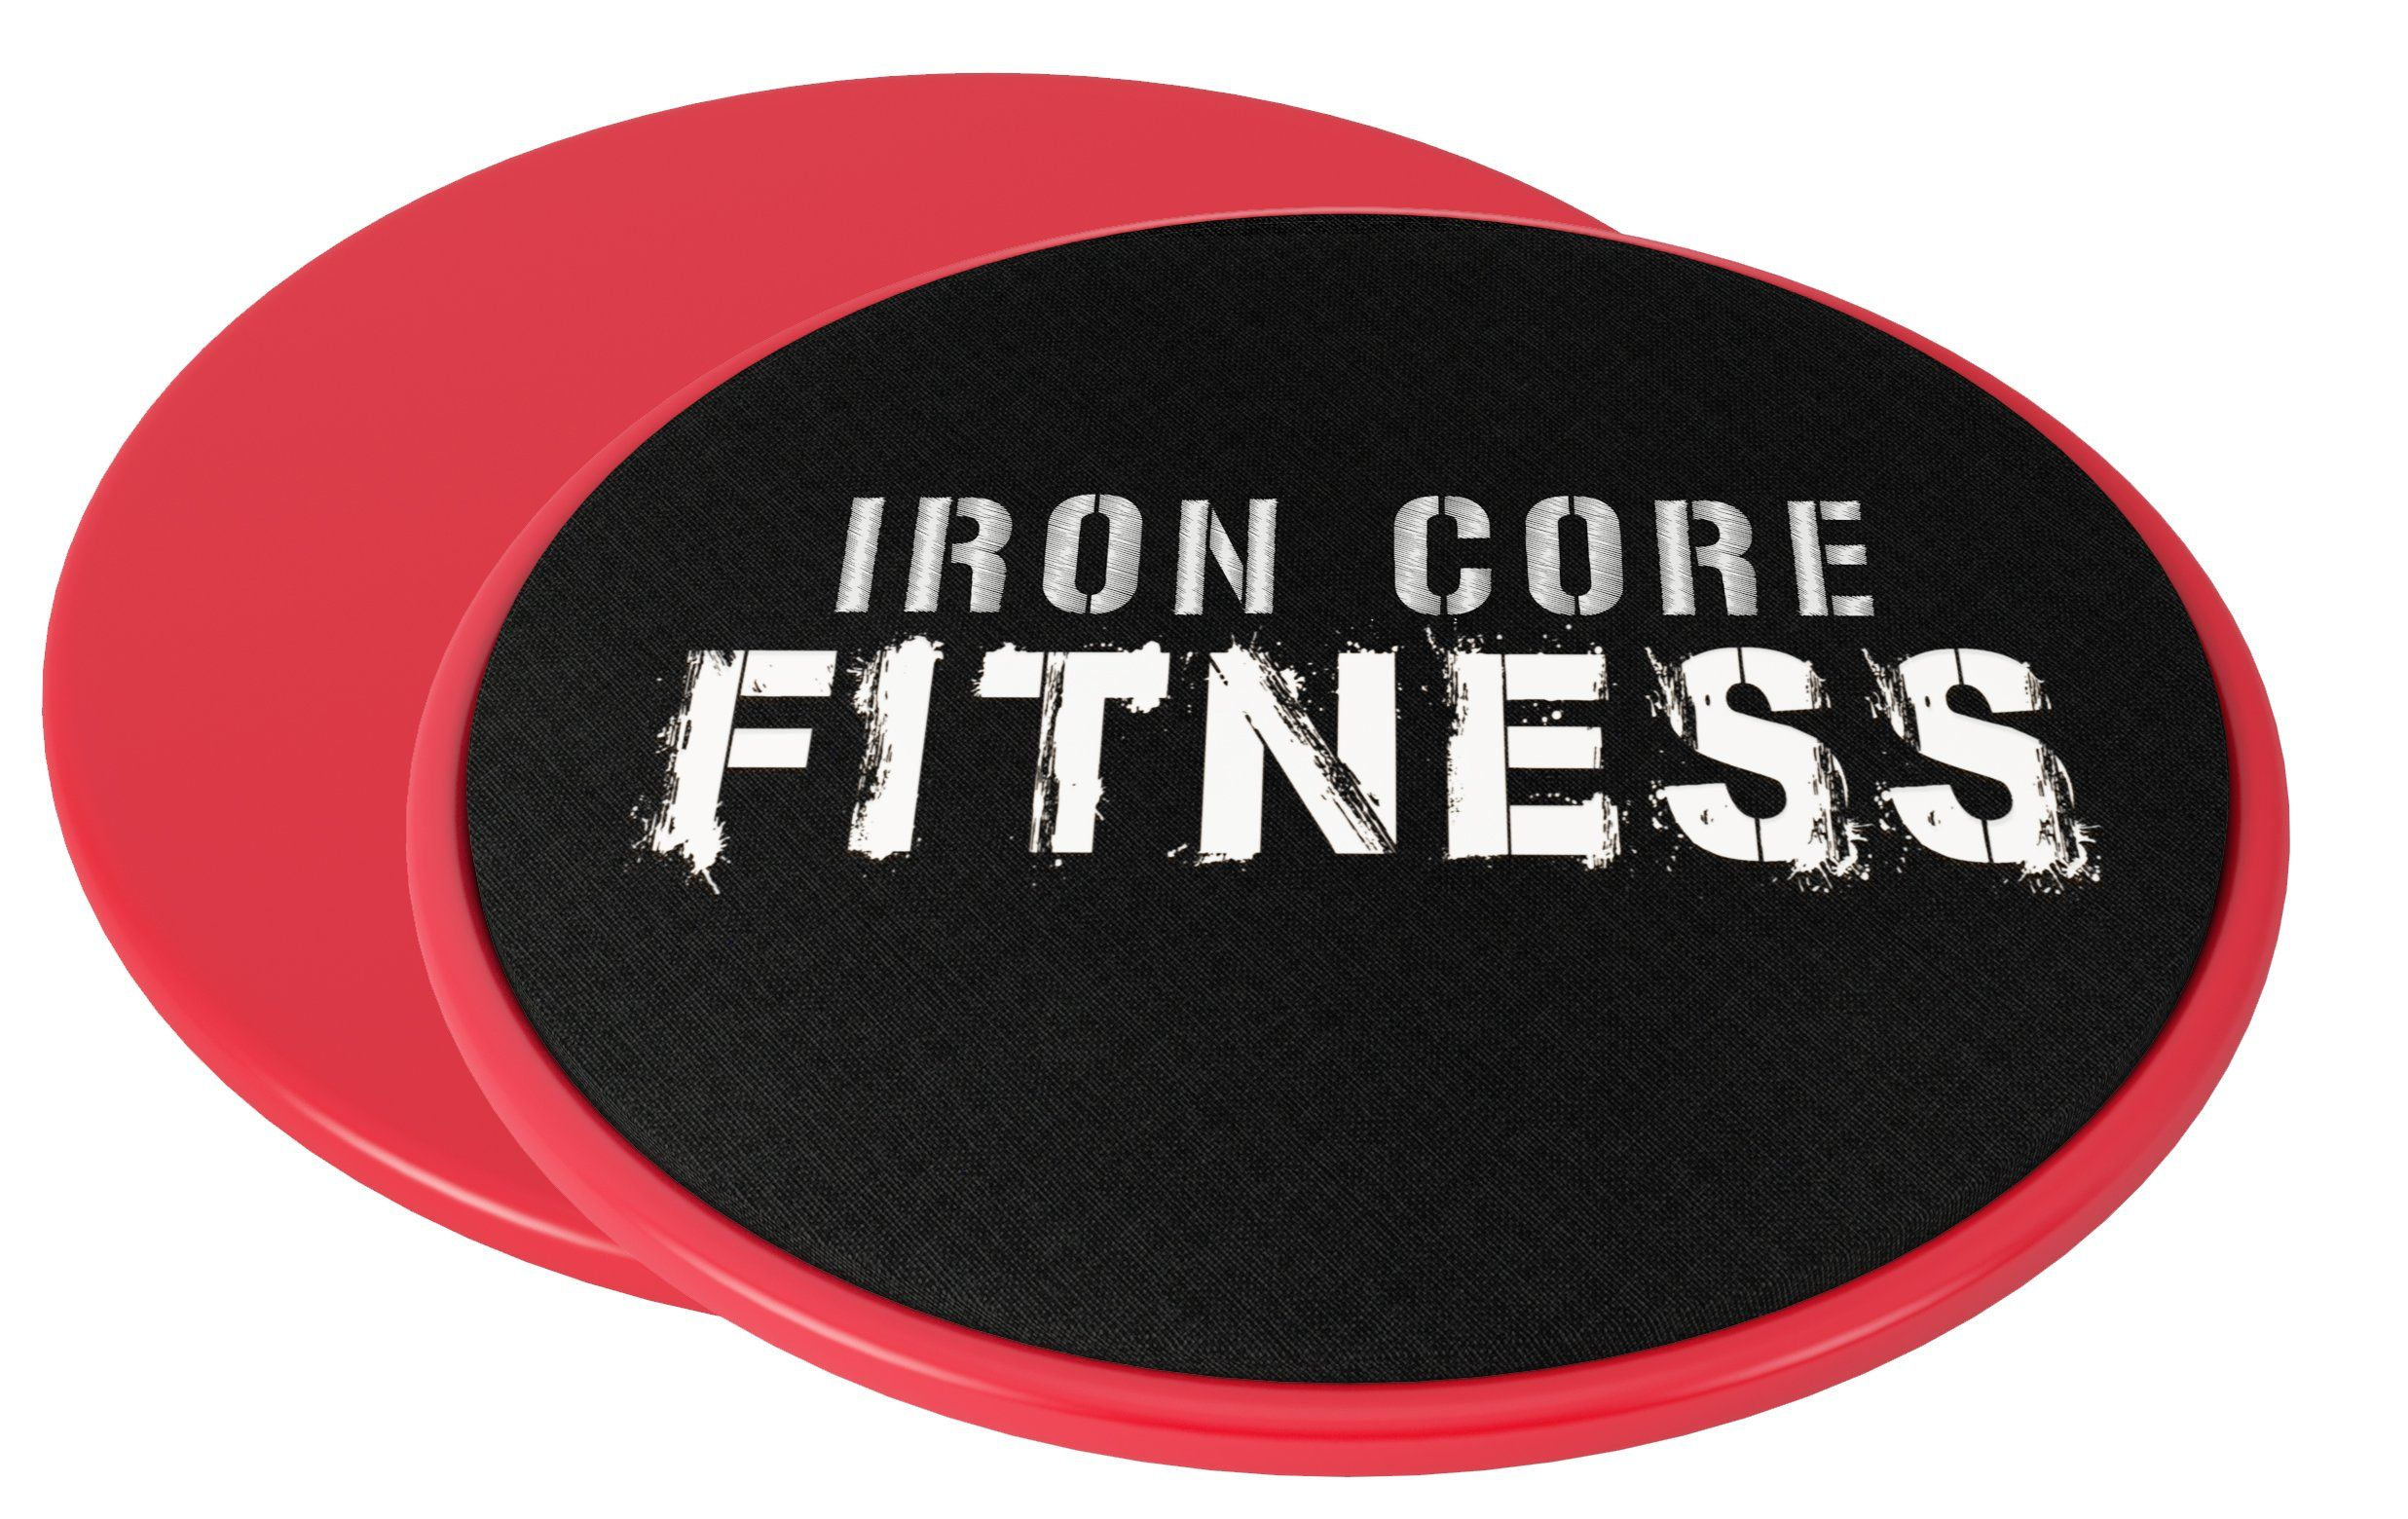 2 X Dual Sided Gliding Discs Core Sliders By Iron Core Fitness Ultimate Core Trainer Gym Home Abdomin Core Sliders Total Body Workout No Equipment Workout